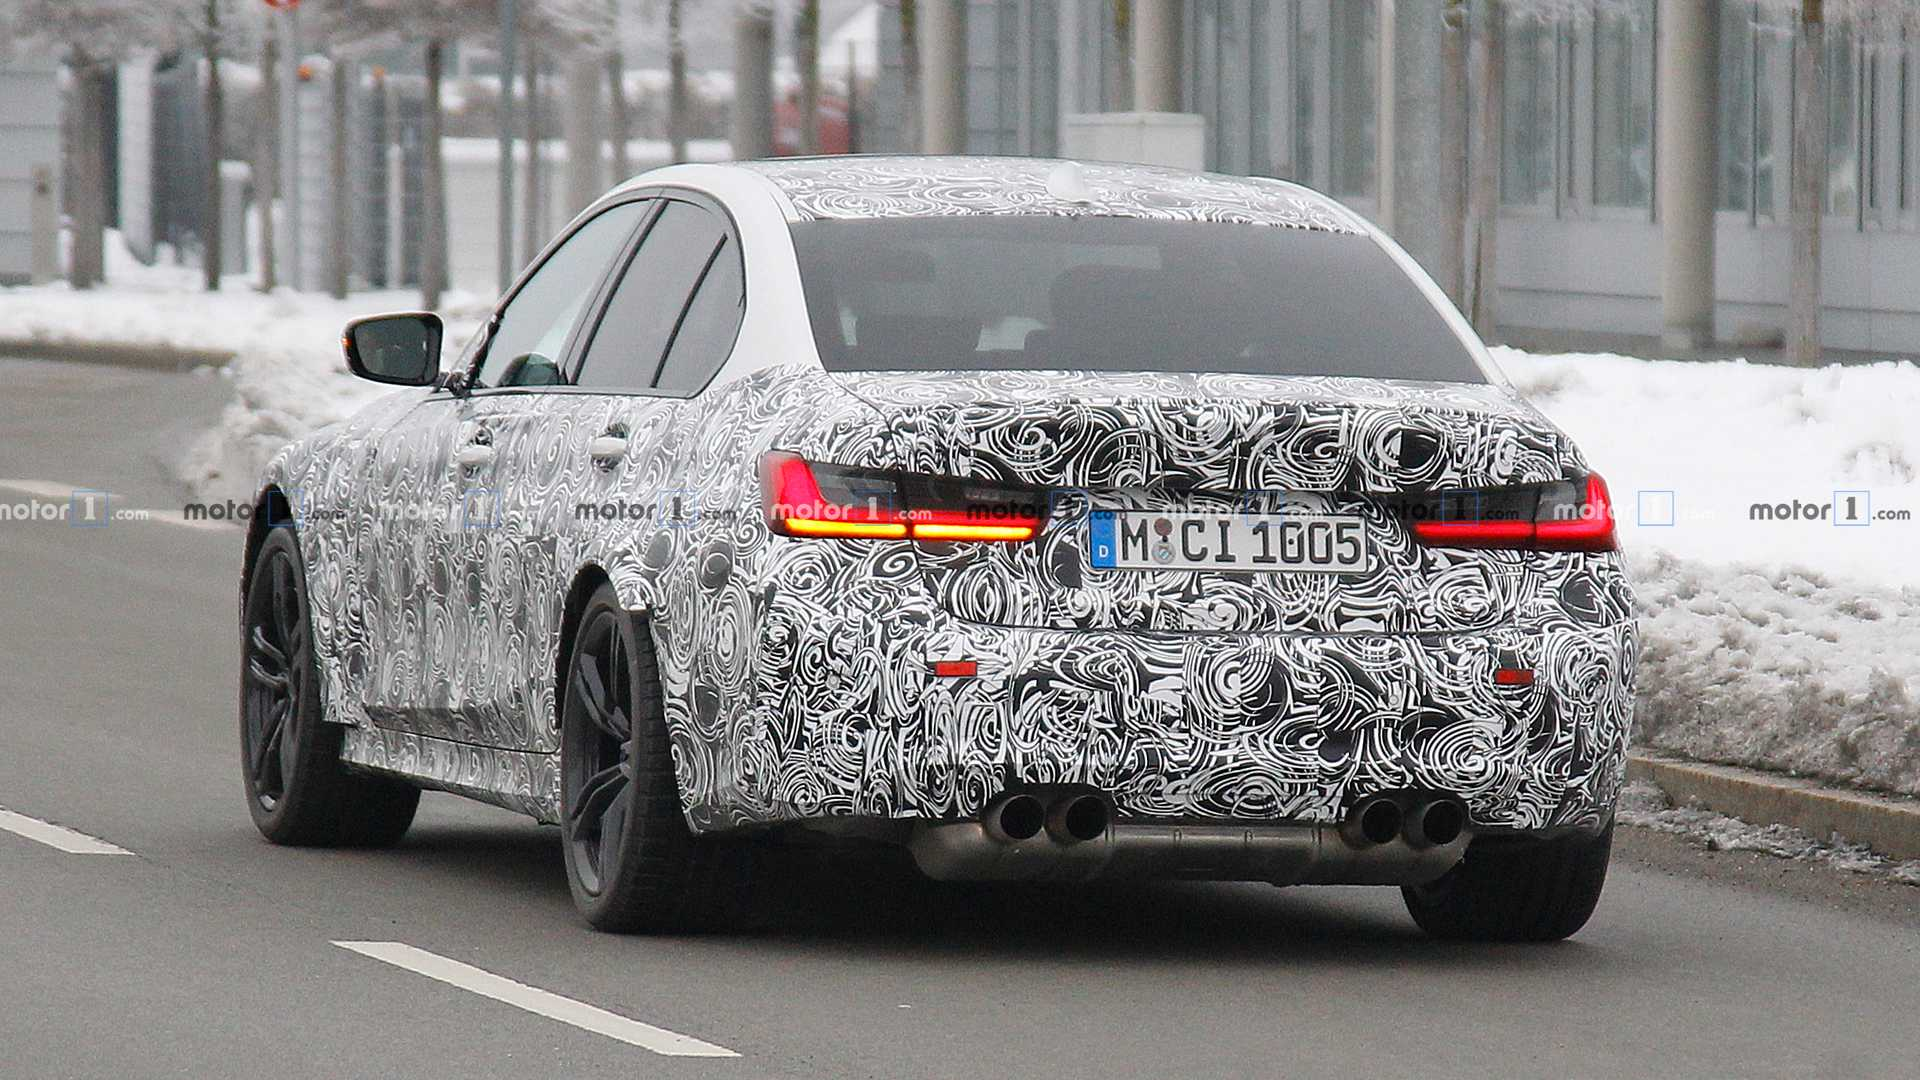 2020-bmw-m3-spy-photo (2).jpg